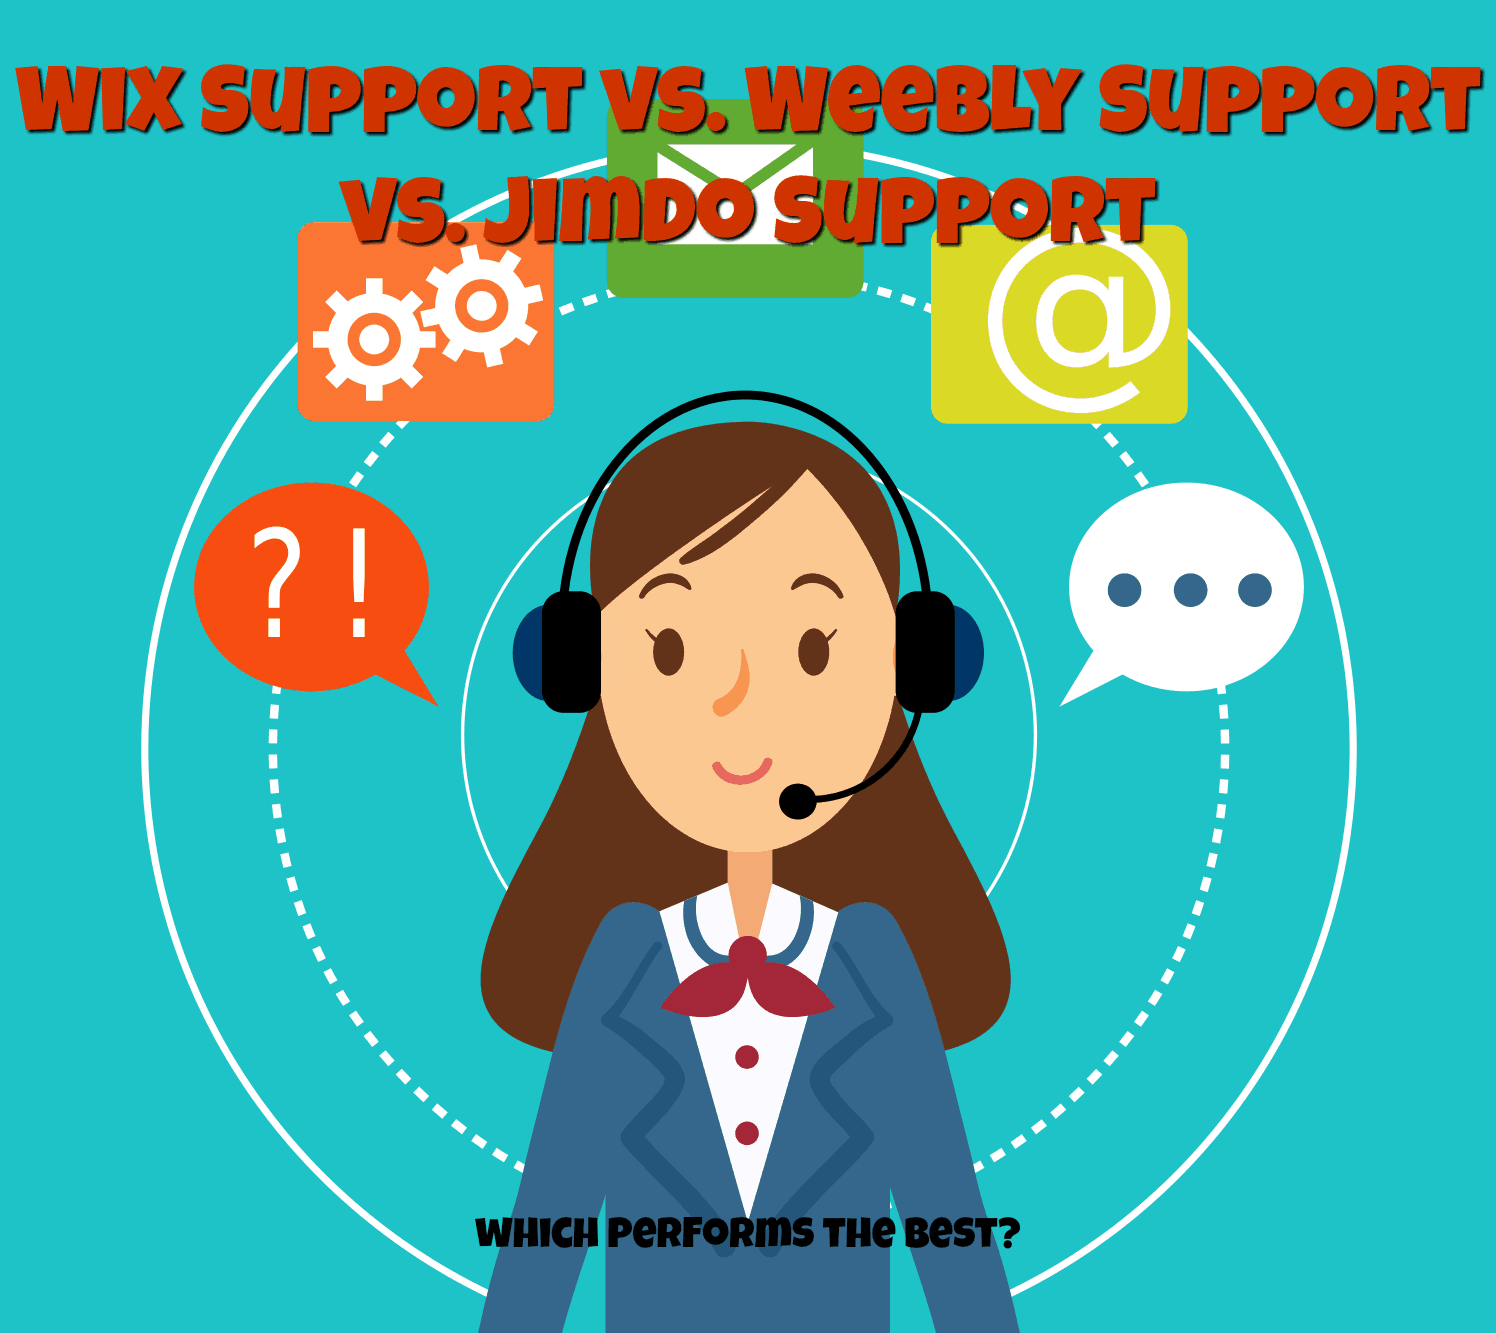 wix support weebly support jimdo support